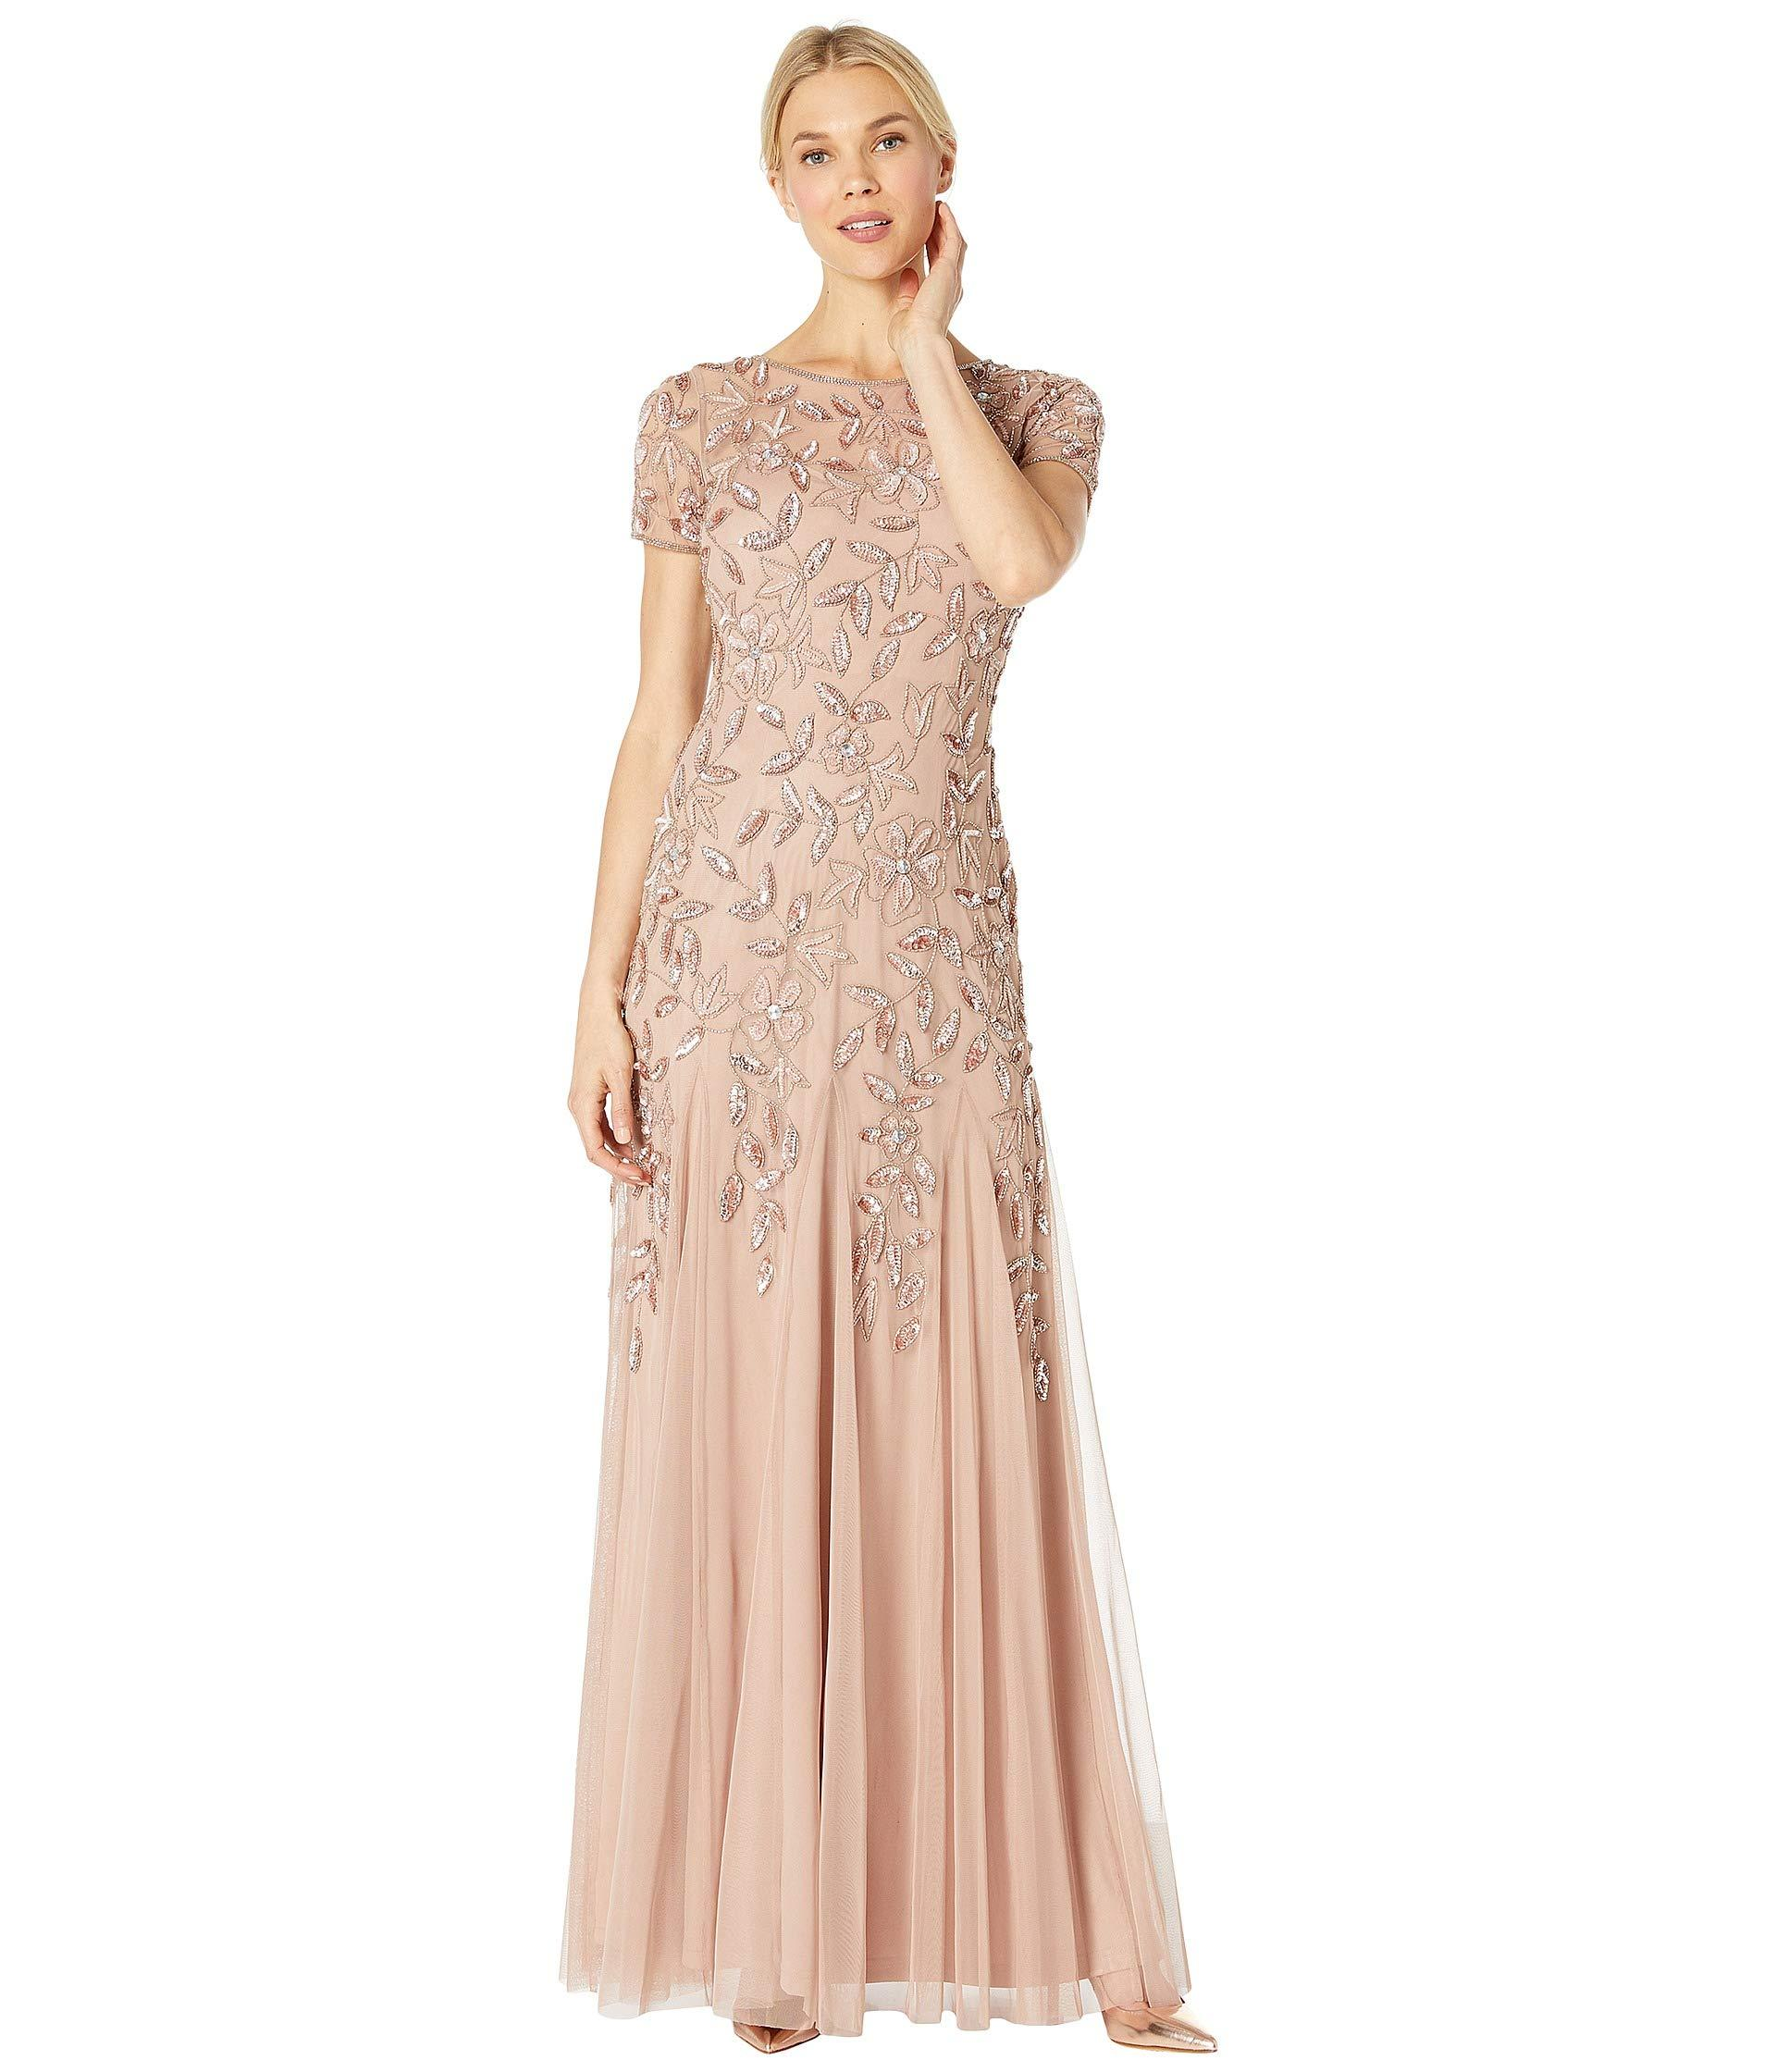 d820beeaed0 Adrianna Papell Floral Beaded Godet Evening Gown in Pink - Save 55 ...